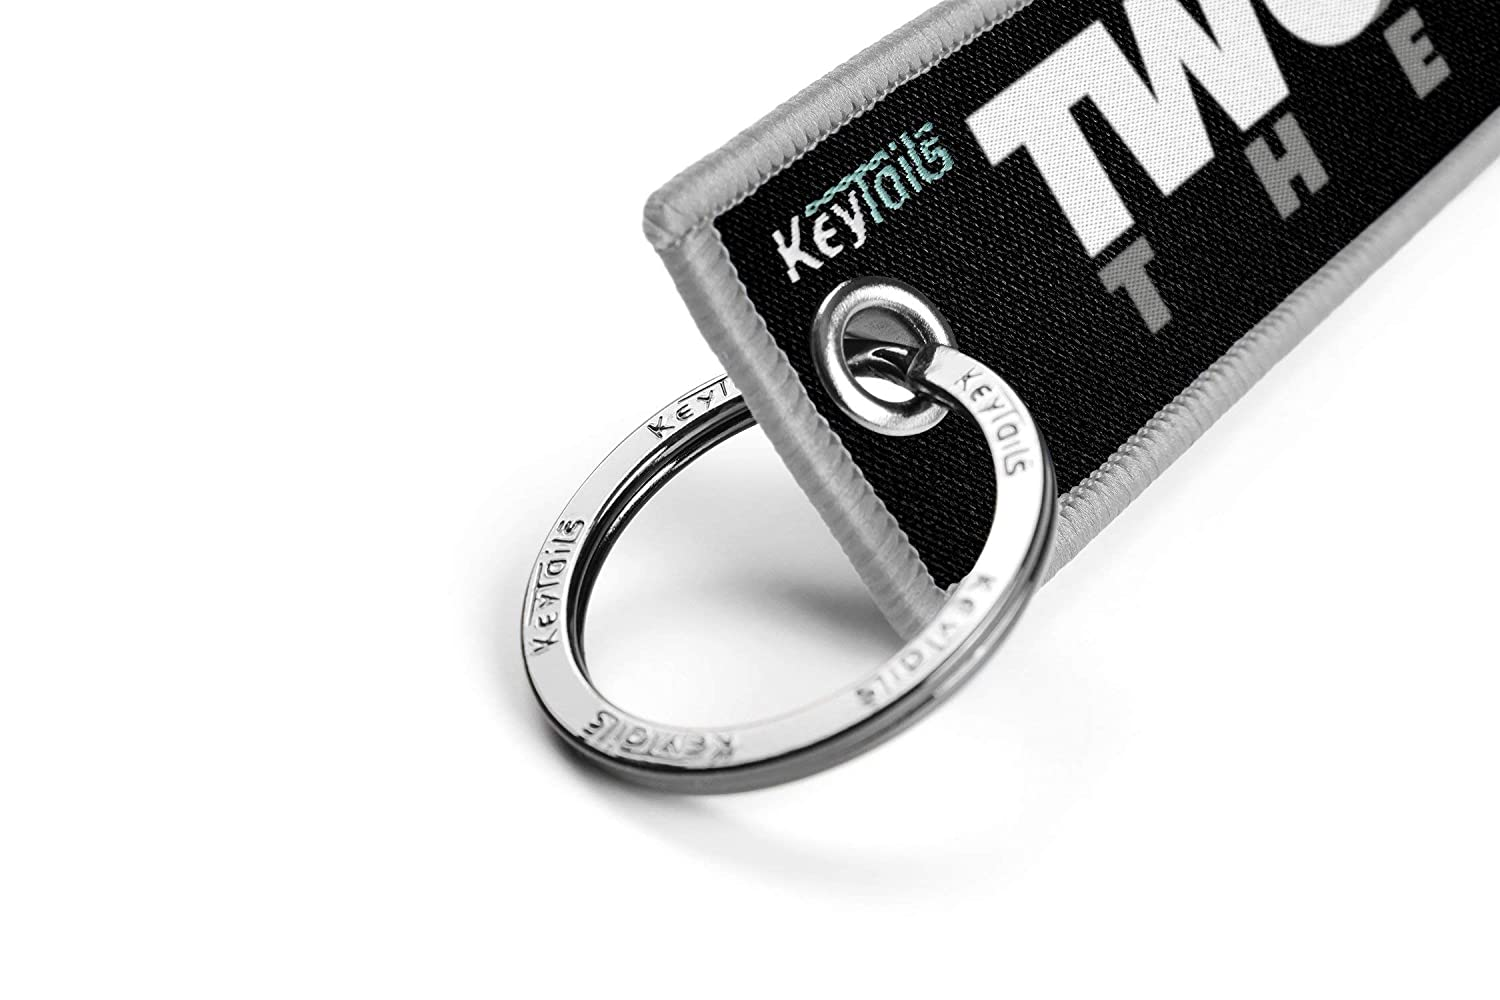 KEYTAILS Keychains ATV UTV Scooter Two Wheel Therapy Premium Quality Key Tag for Motorcycle